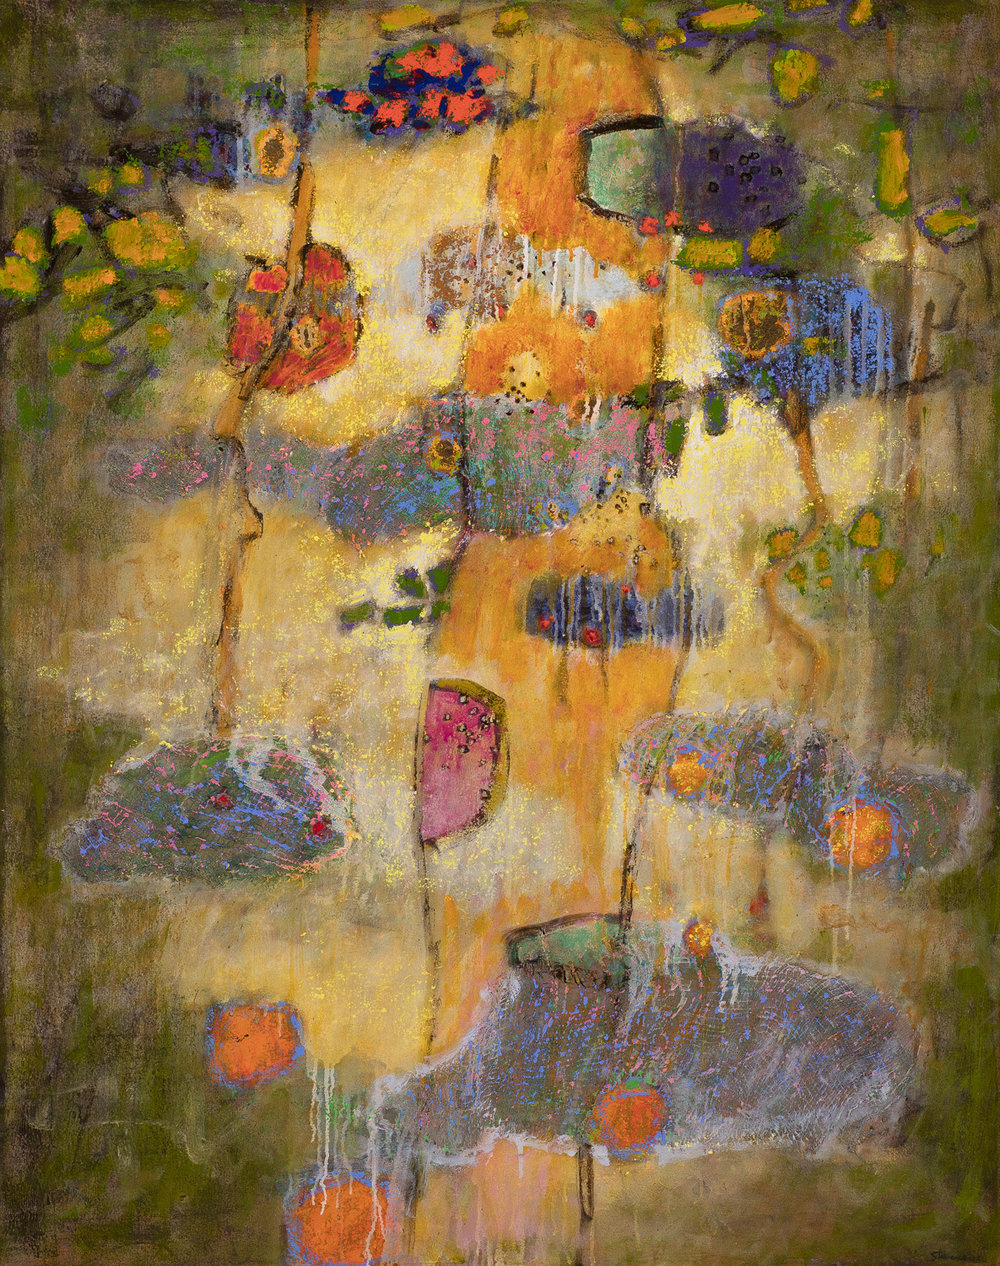 Deepening Entwinement   | oil on canvas | 48 x 38"